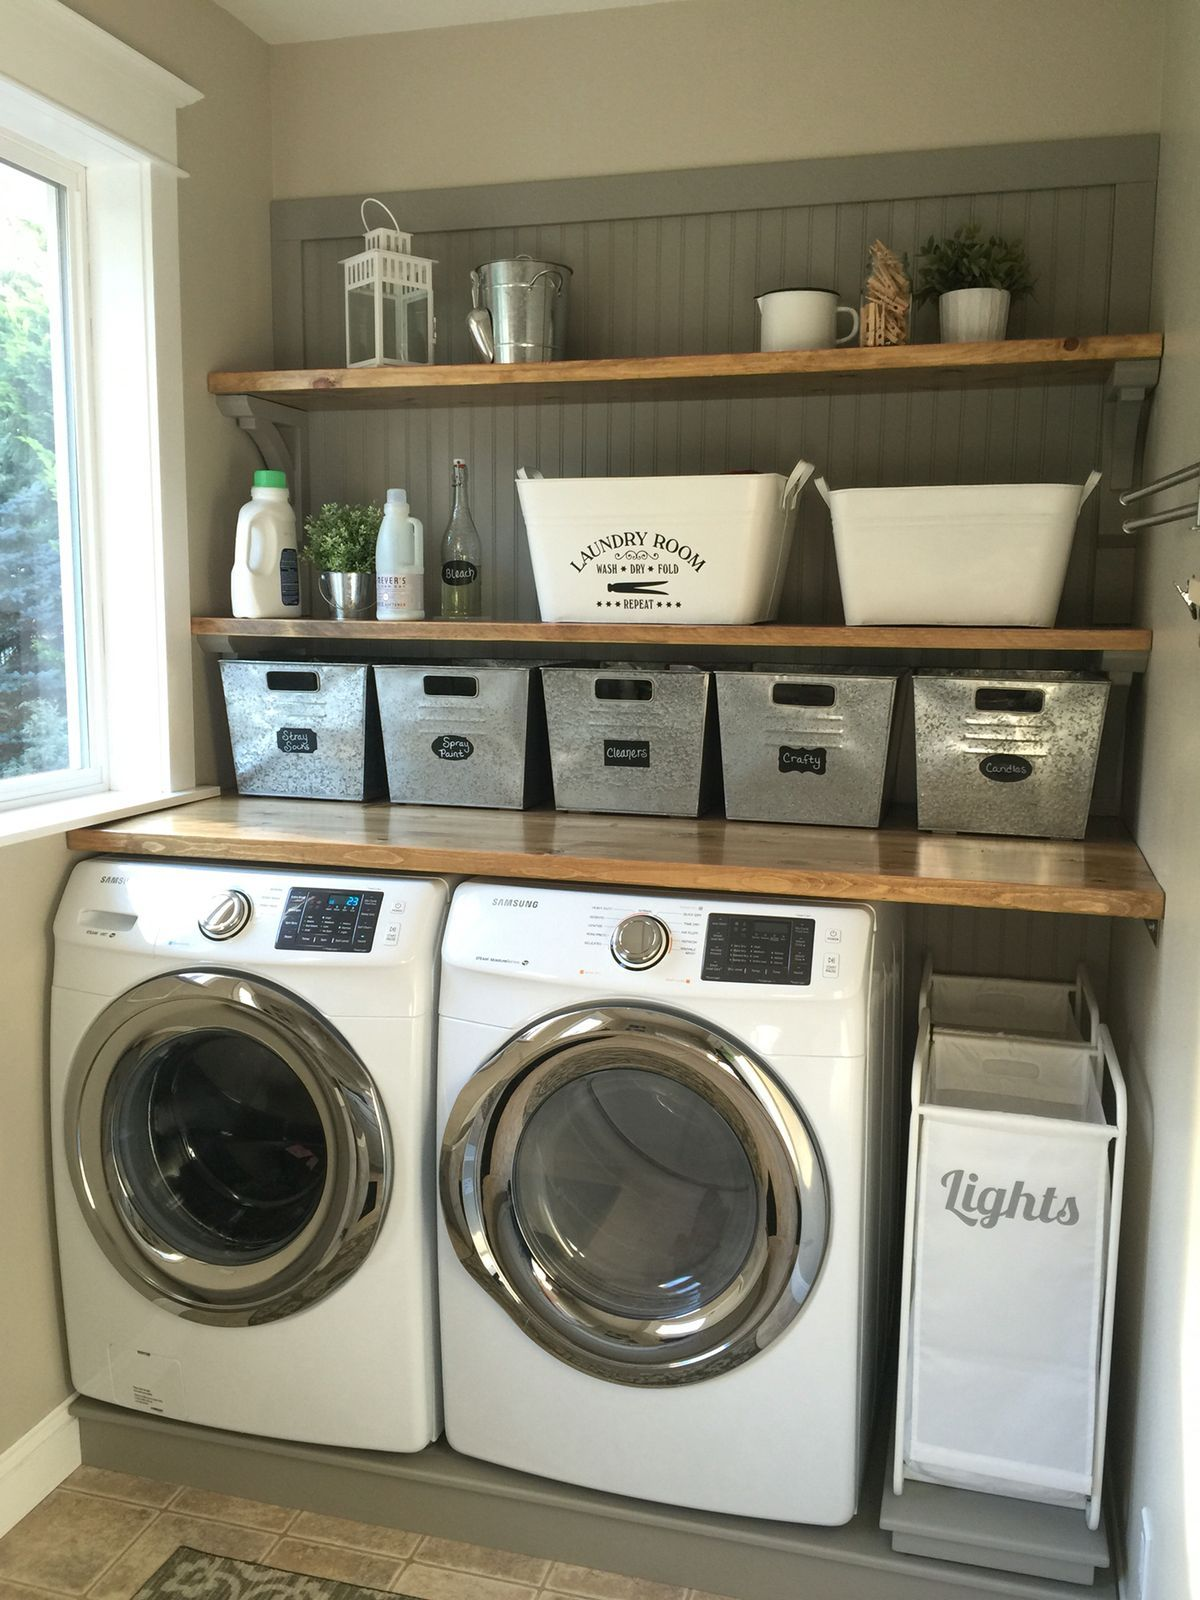 Laundry room and bathroom combo designs - This Just Might Work In Our Laundry Room Laundry Room Makeover Wood Counters Walmart Tin Totes Pull Out Laundry Bins